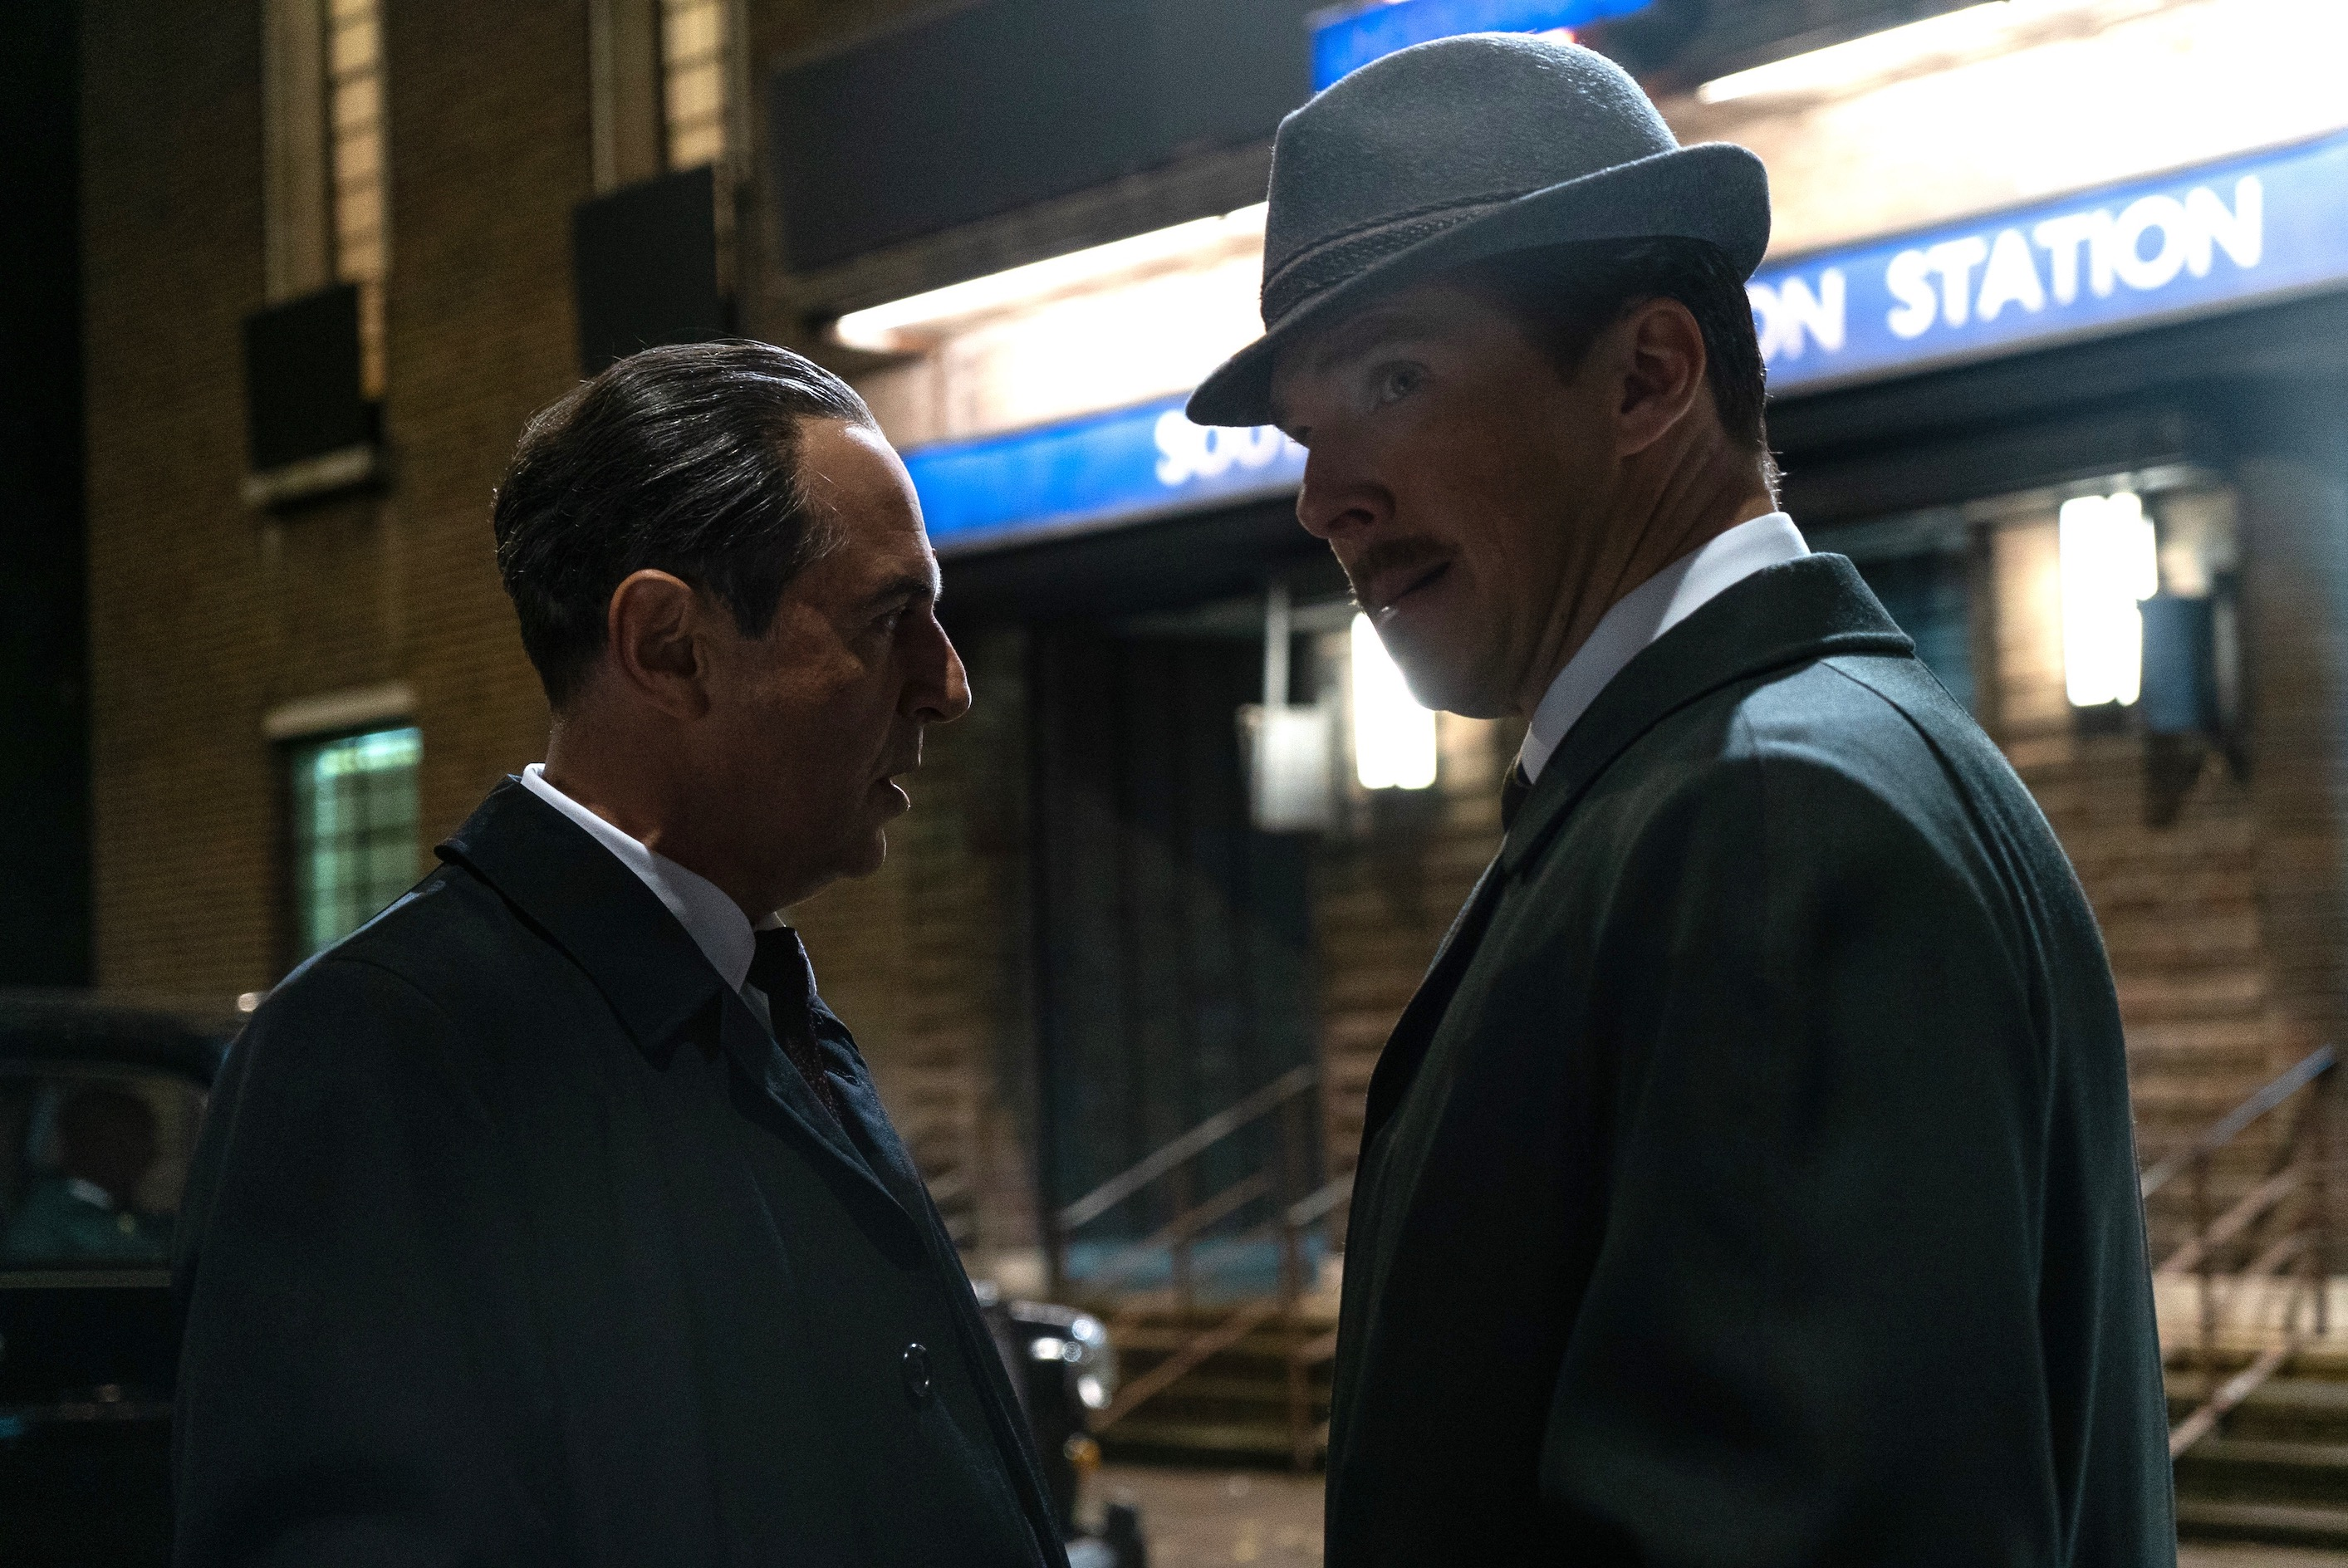 Merab Ninidze and Benedict Cumberbatch glance furtively as they talk quietly at night on a city street in the movie The Courier